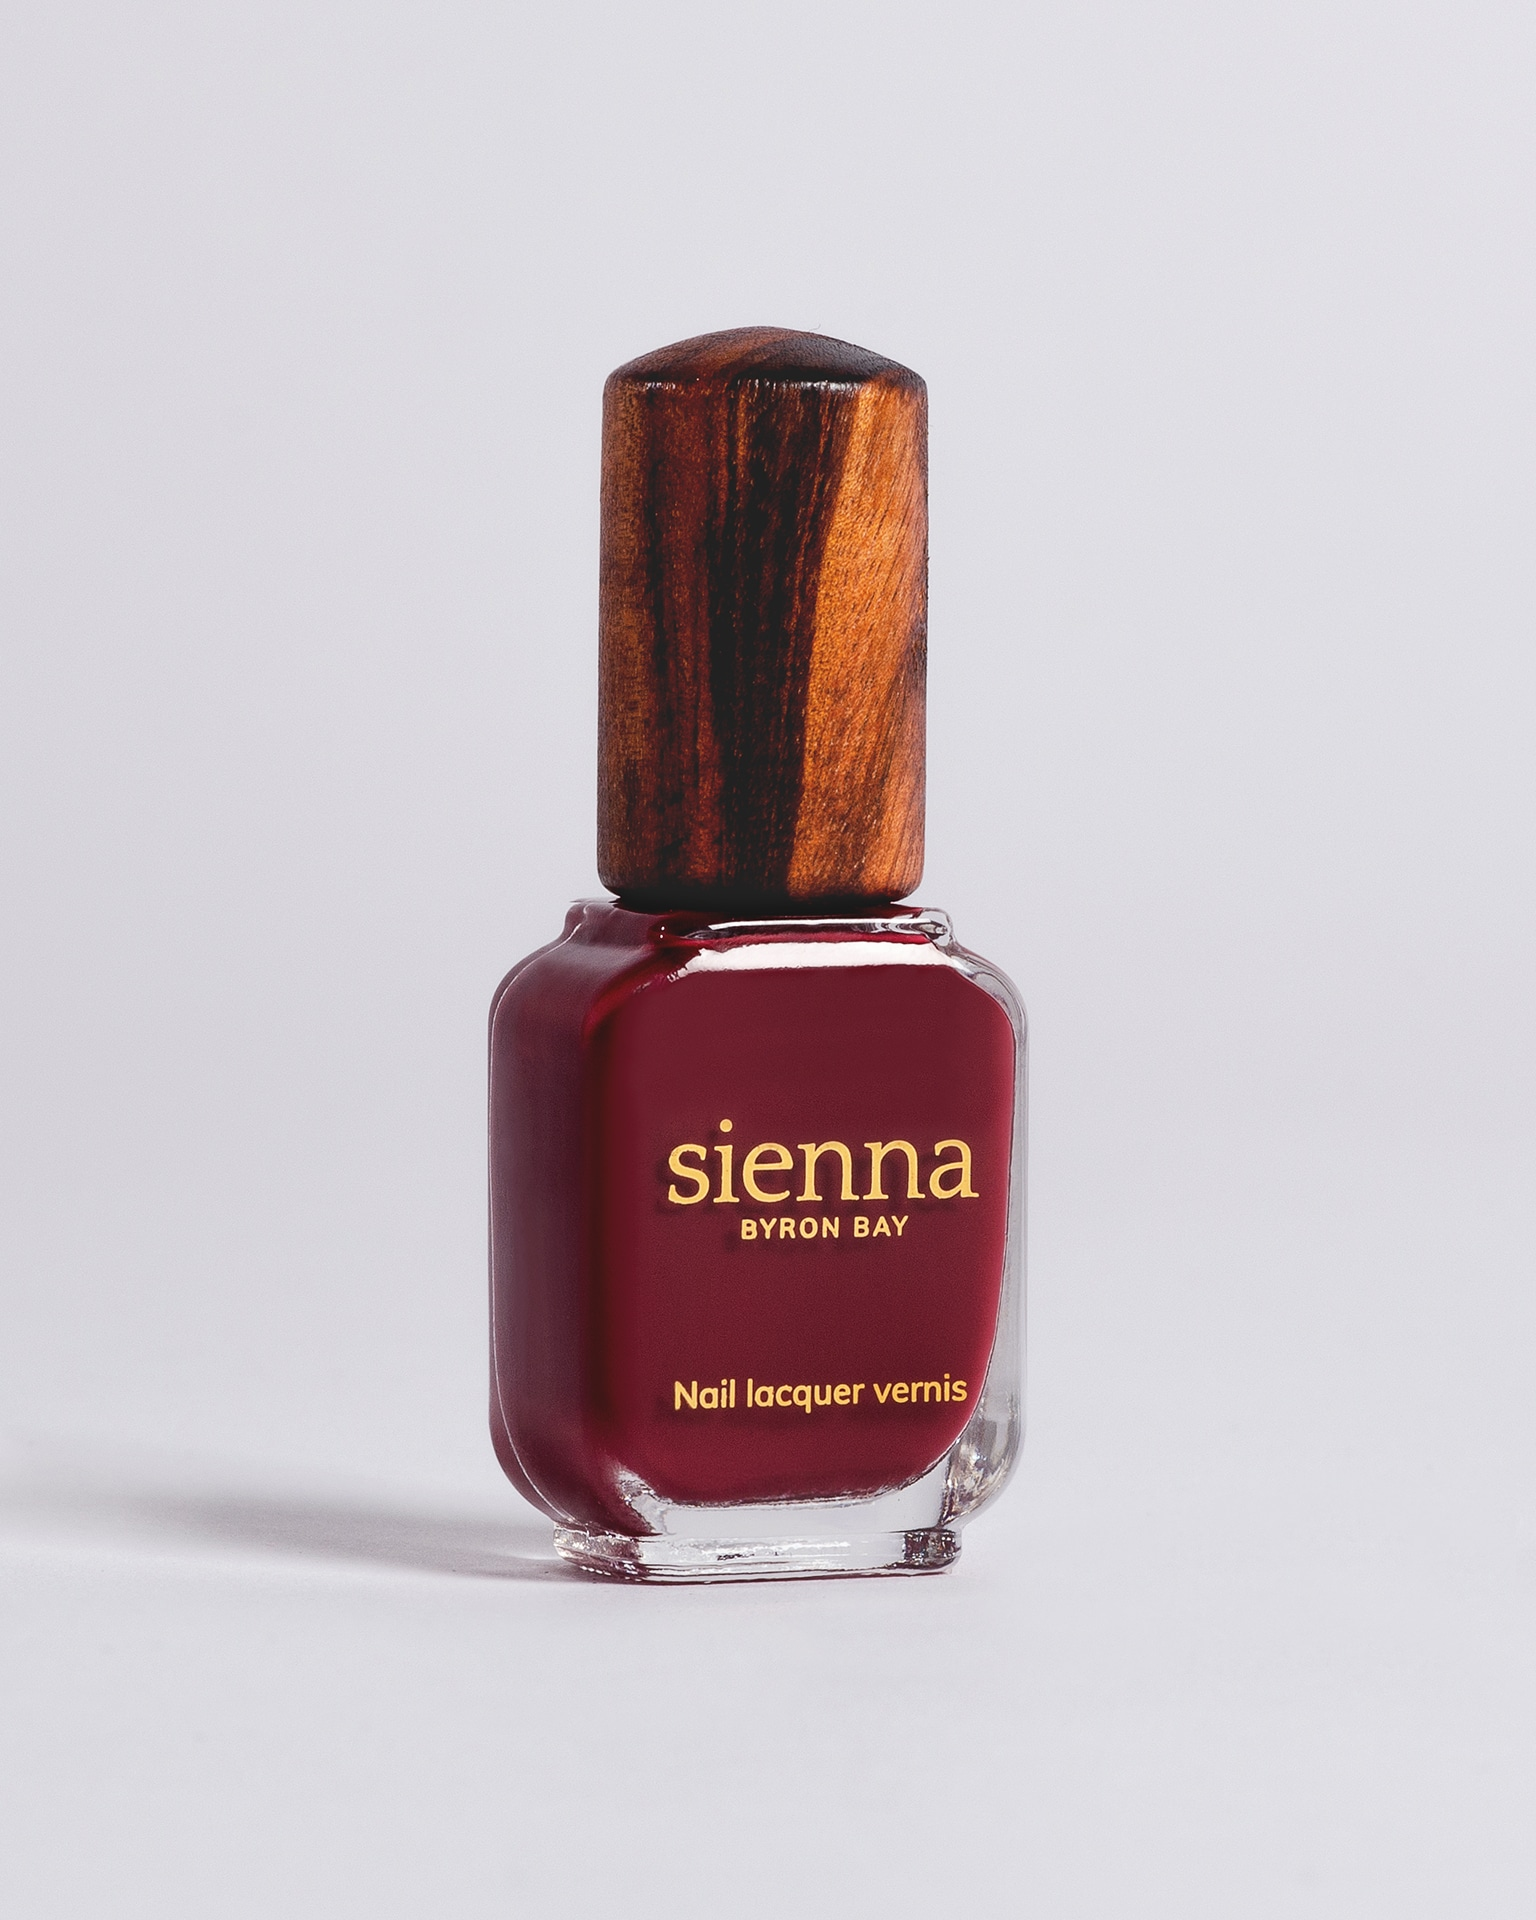 plum red nail polish bottle with timber cap by sienna